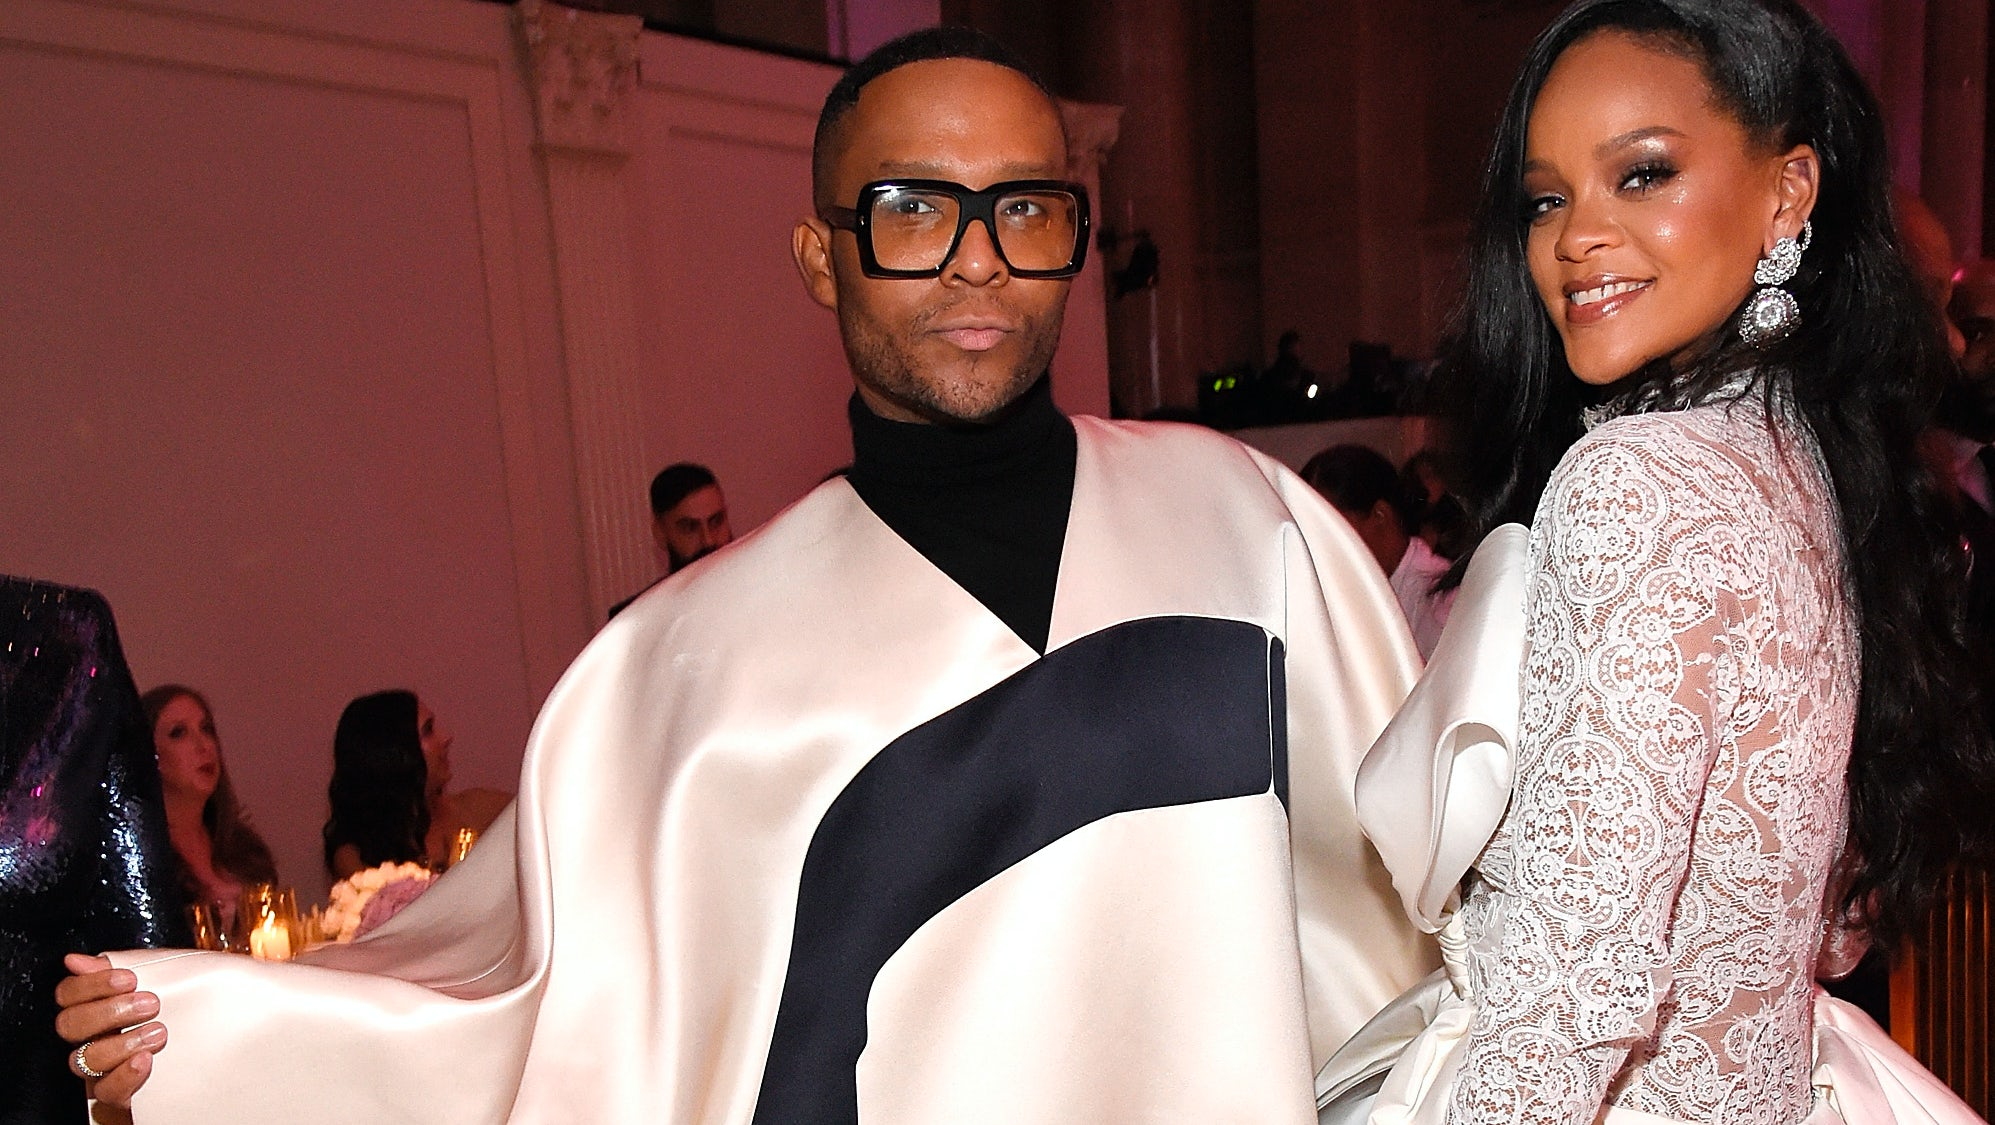 Law Roach and Rihanna attend Rihanna's 4th Annual Diamond Ball benefitting The Clara Lionel Foundation at Cipriani Wall Street on September 13, 2018 in New York City | Source: Getty Images